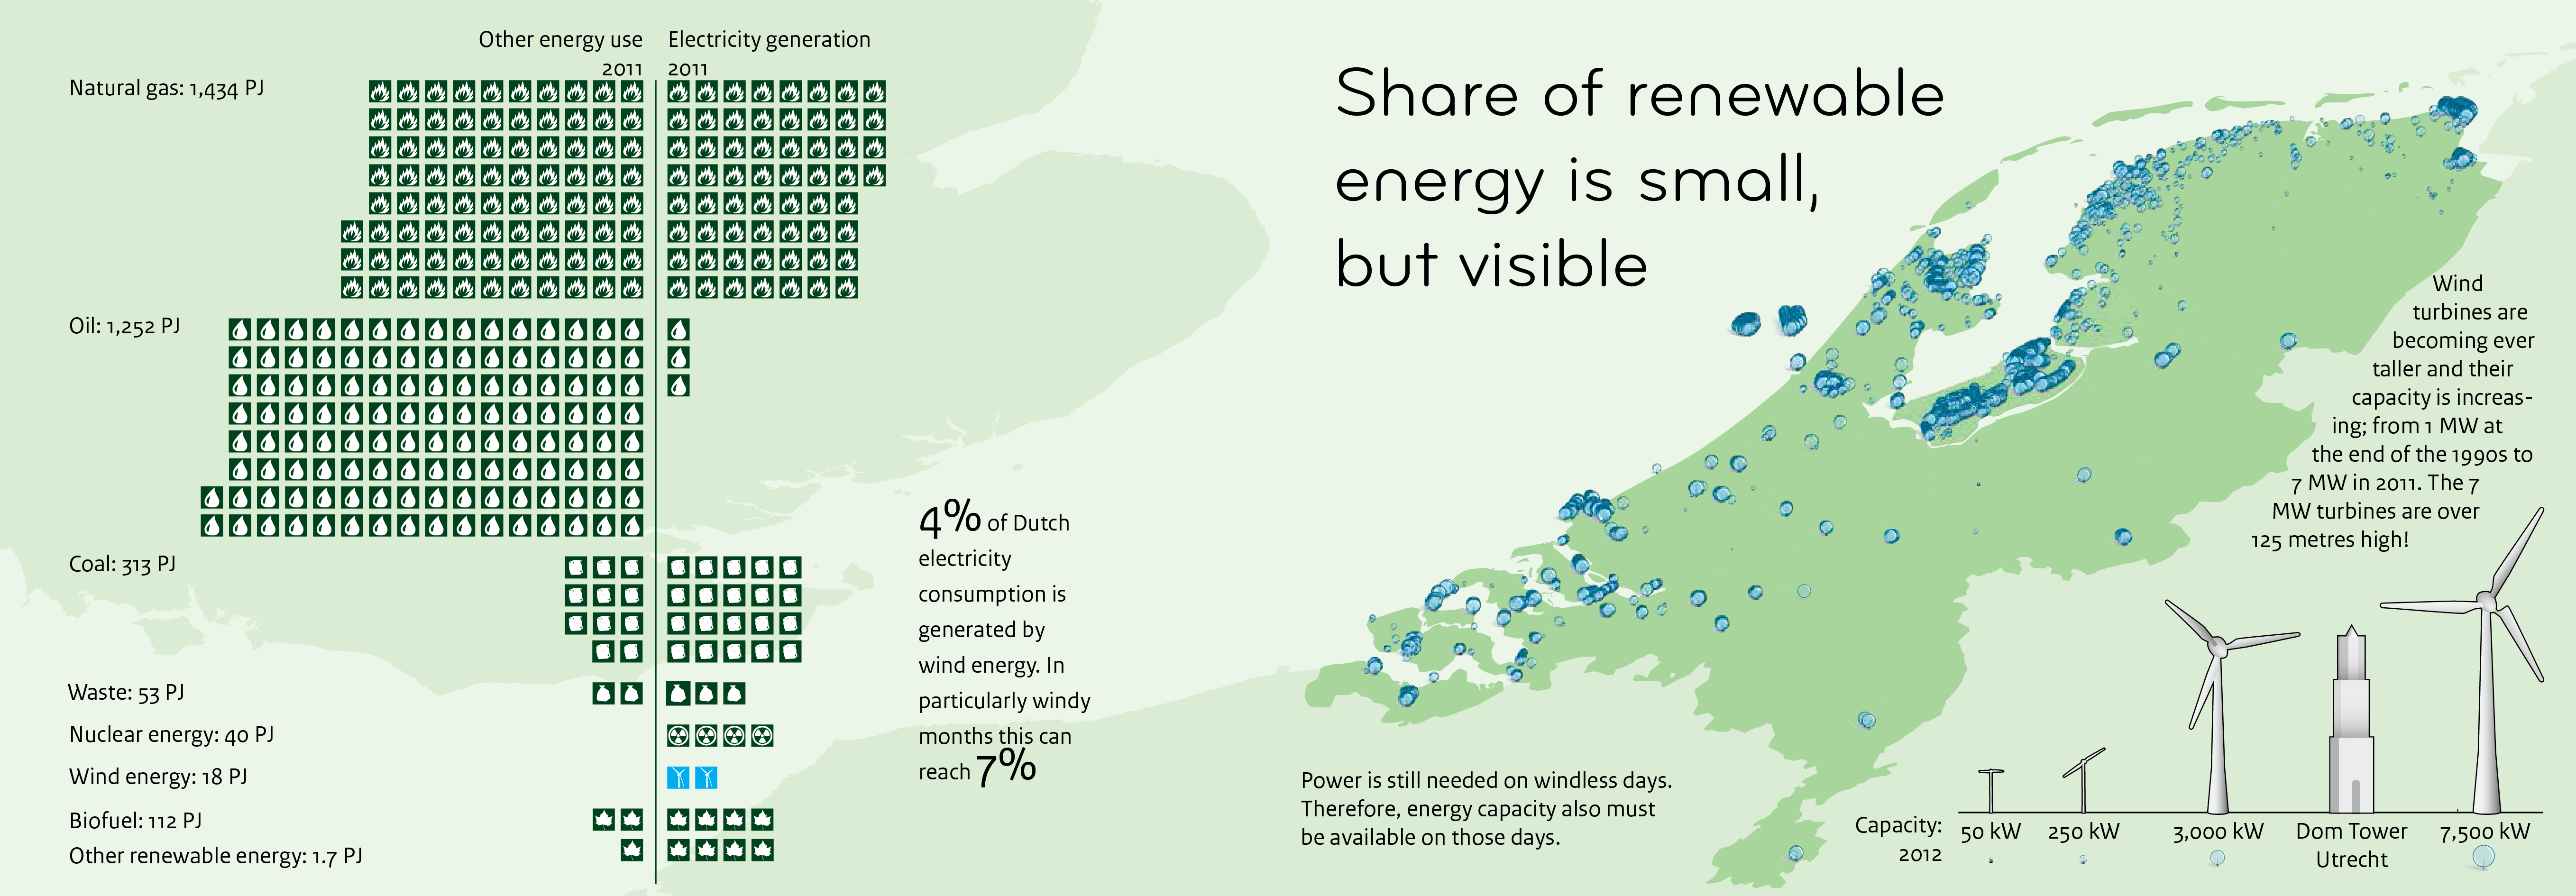 The share of renewable energy is small, but visible in the Netherlands. The largest contribution is made by biomass.